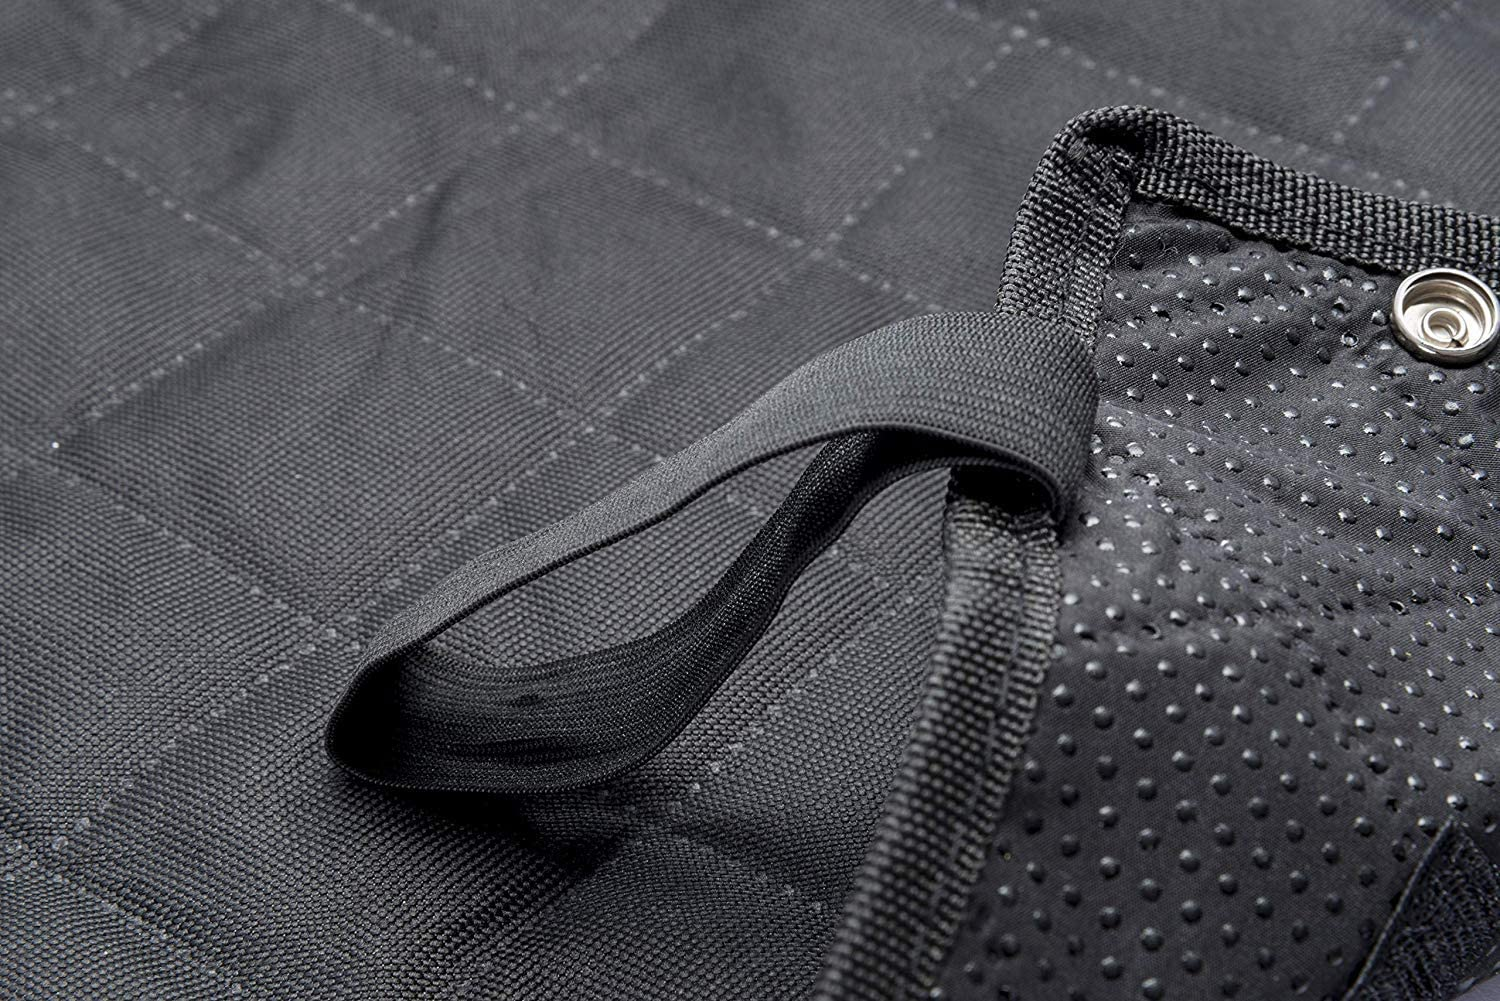 Waterproof Ideal For Travelling With Dogs and Pets The Urban Company Boot Liner Quilted to Fit Bmw X5 E70 Suv Years 06-10 5 Door